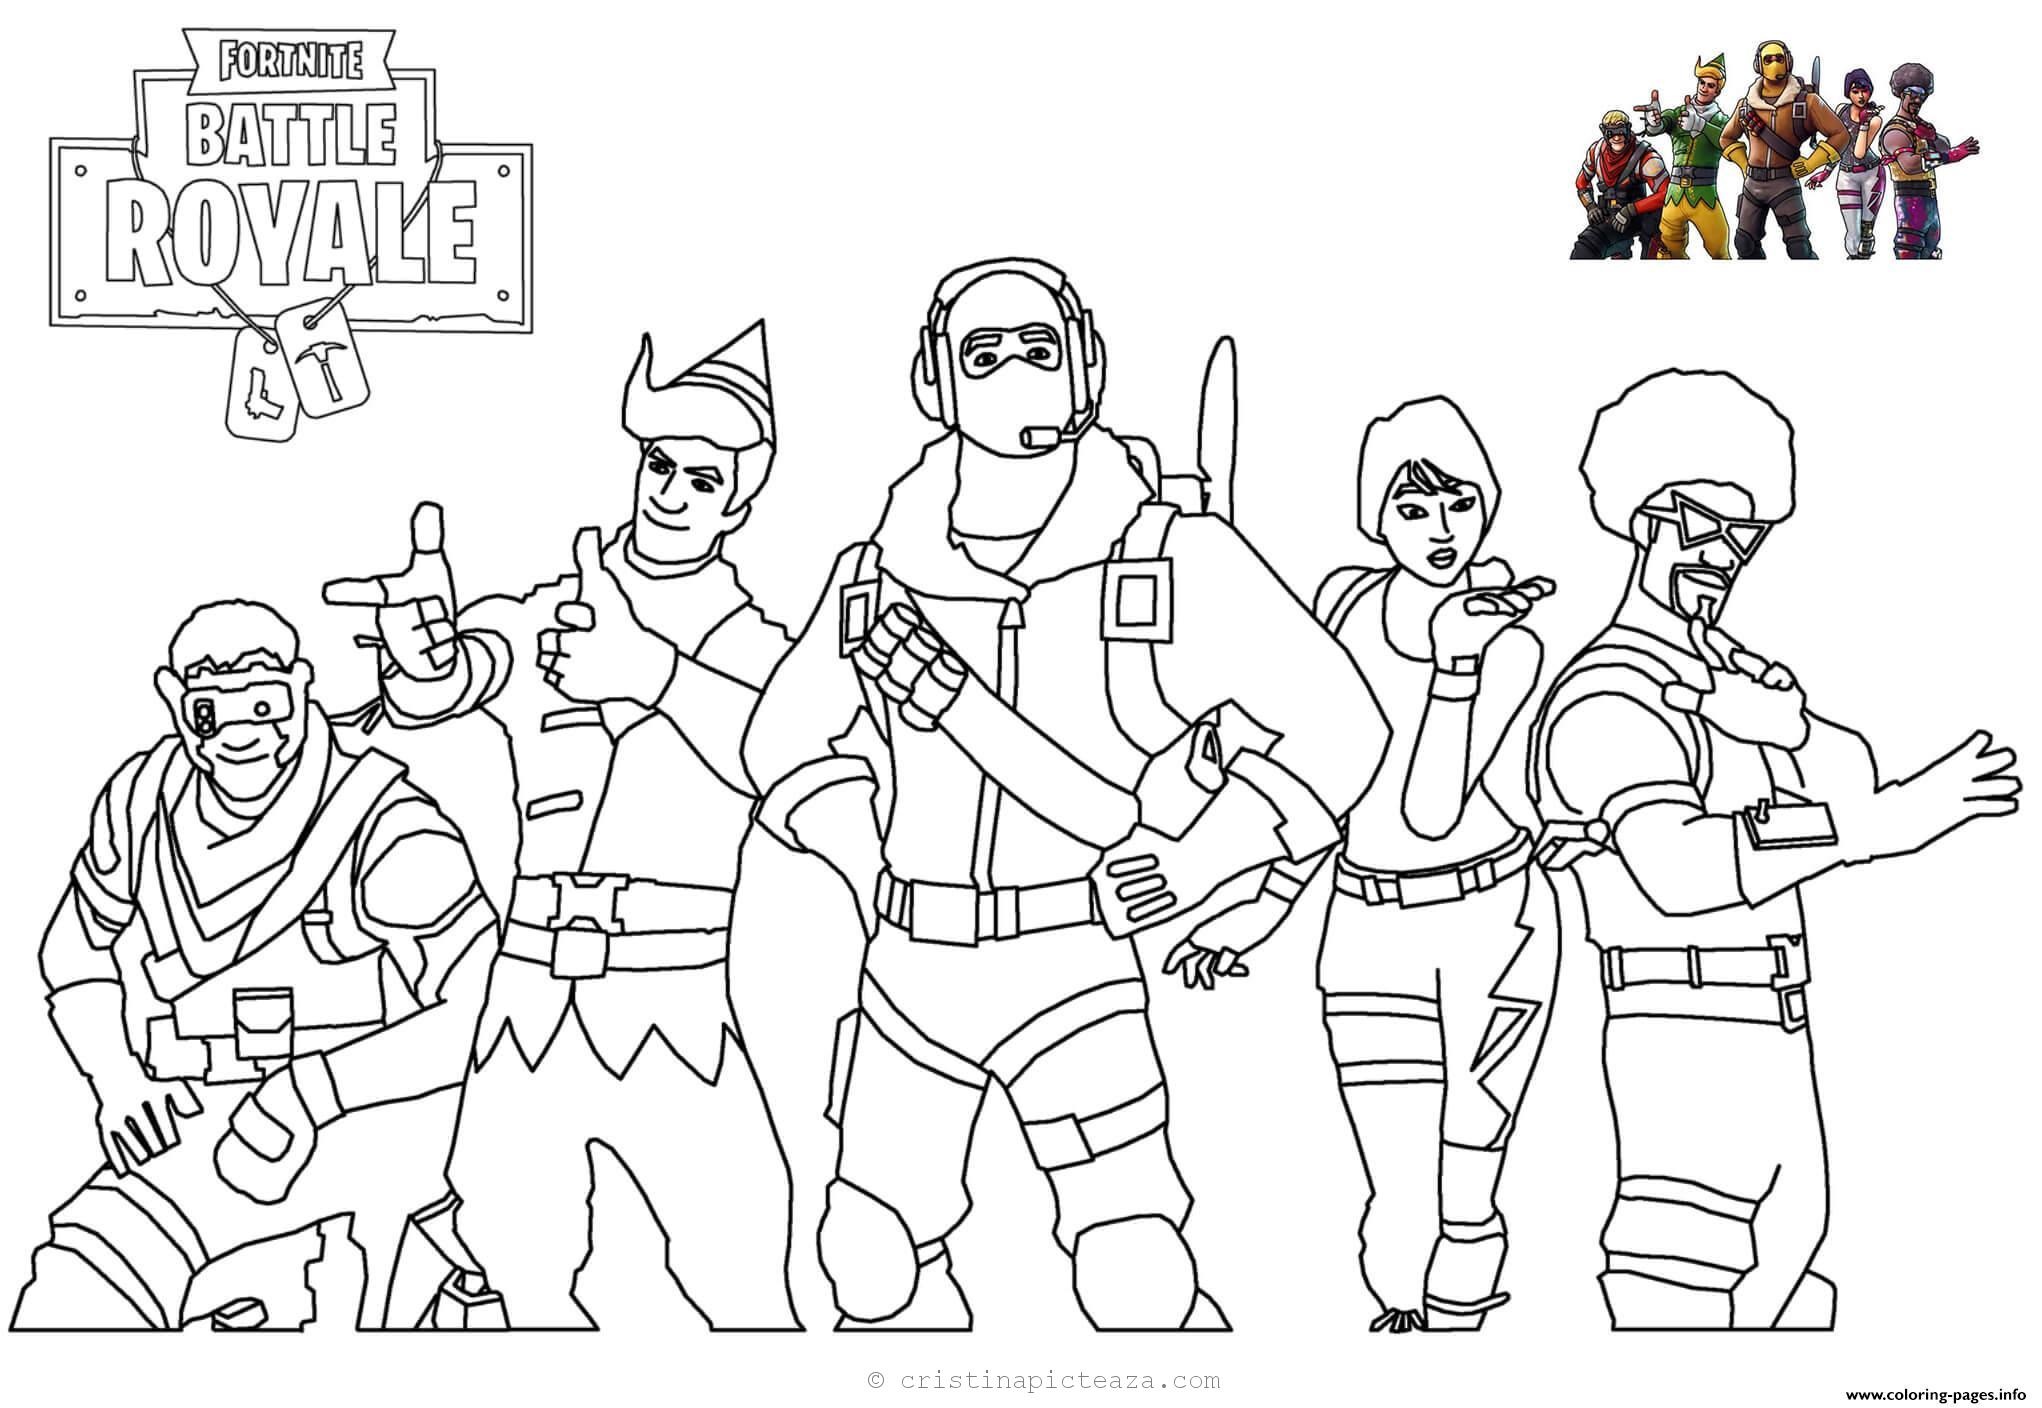 880 Top Coloring Pages Fortnite  Images